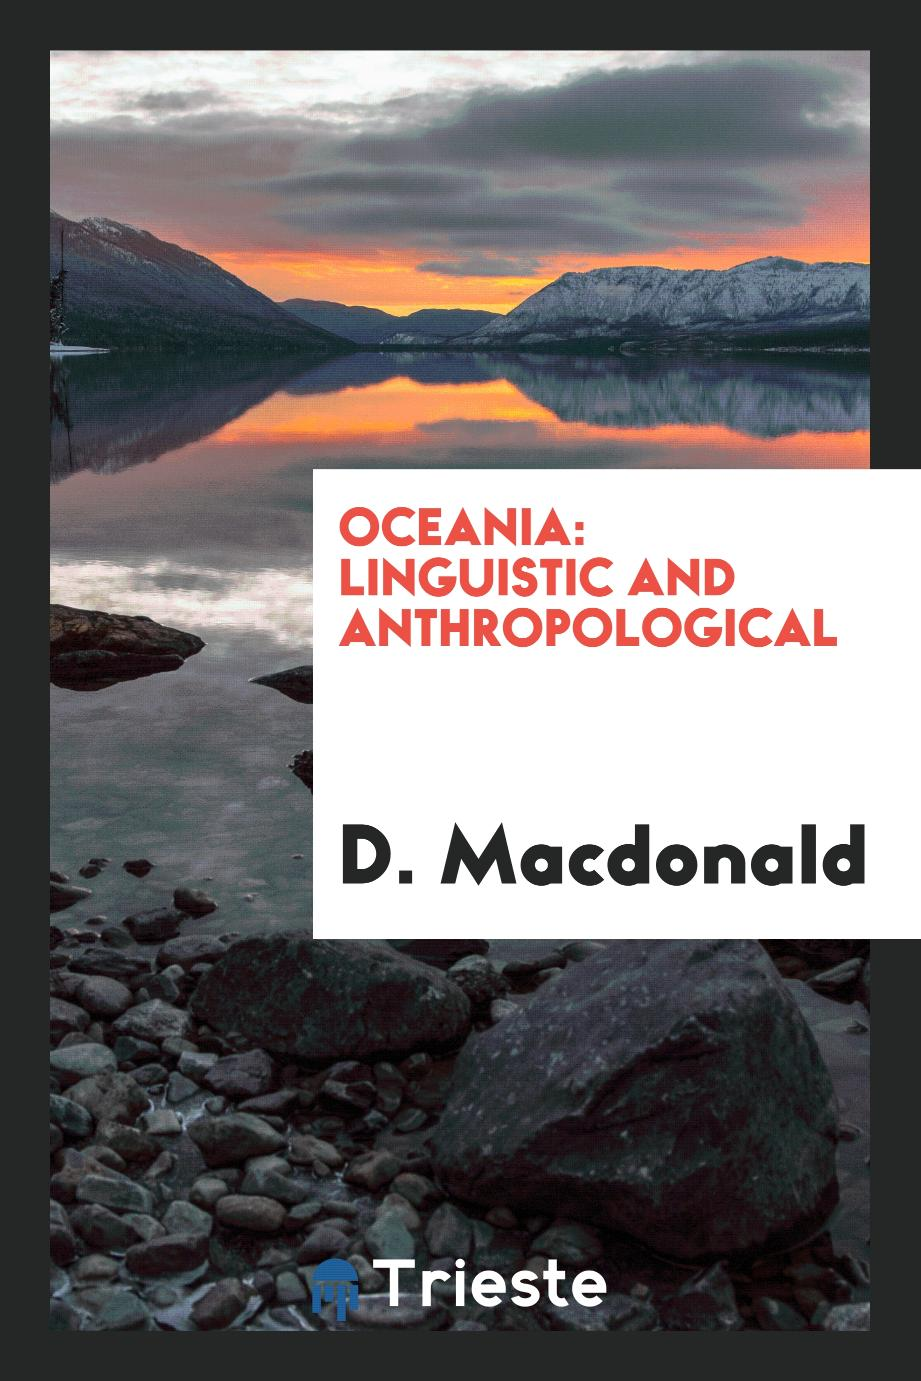 Oceania: Linguistic and Anthropological